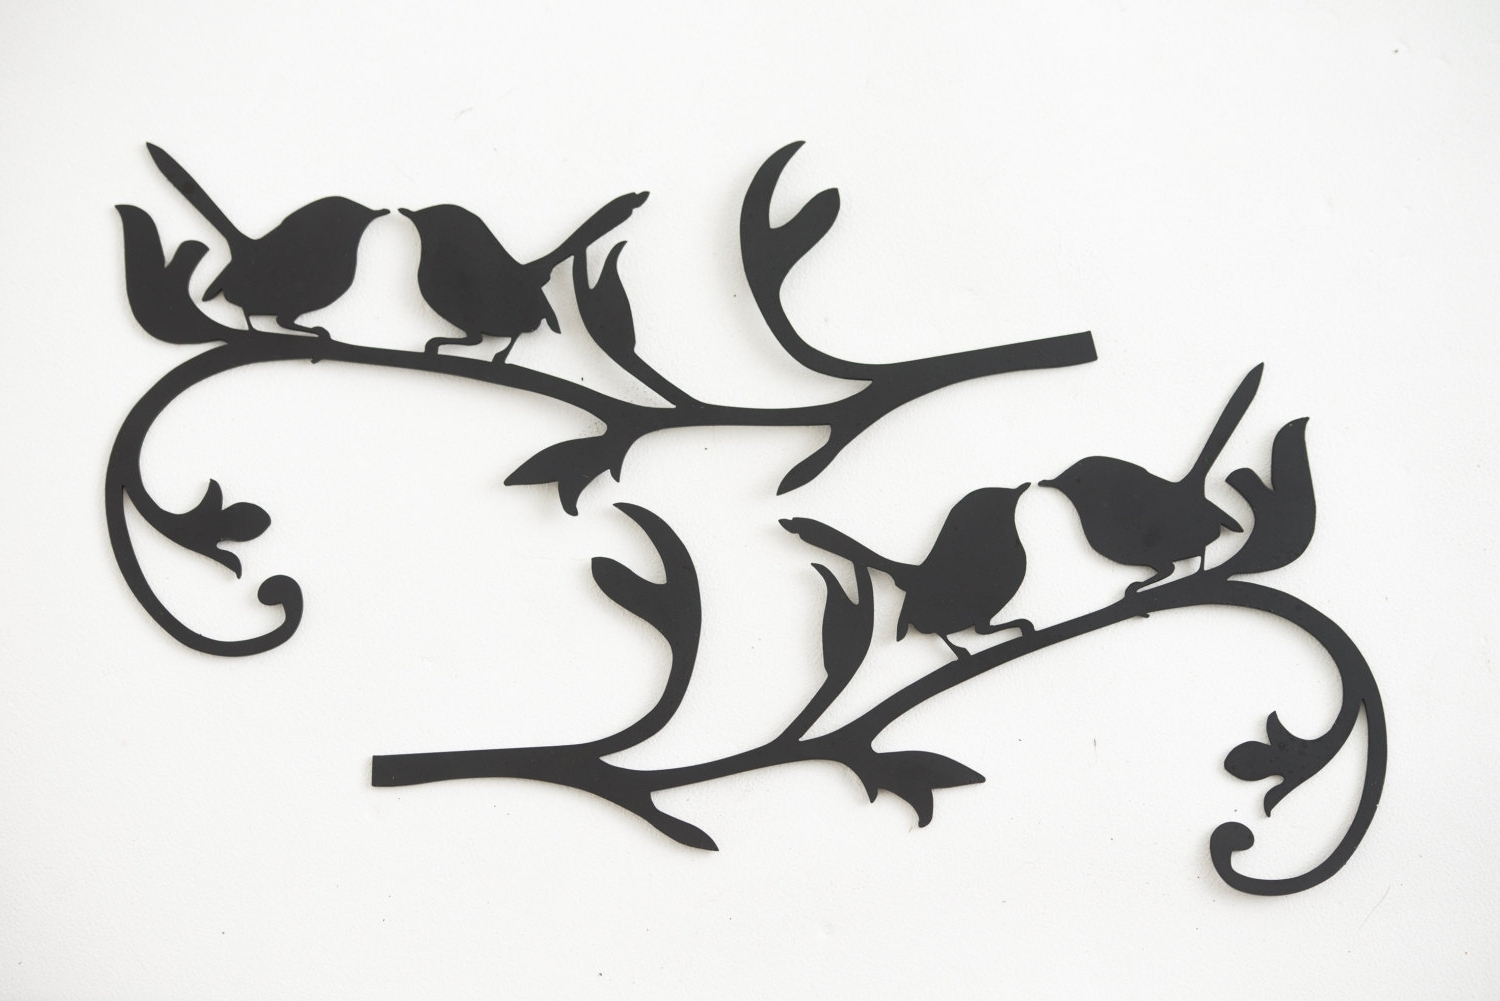 Wall Art Designs: Metal Bird Wall Art Hand Drawn And Laser Cut Regarding Most Current Flying Birds Metal Wall Art (View 15 of 15)